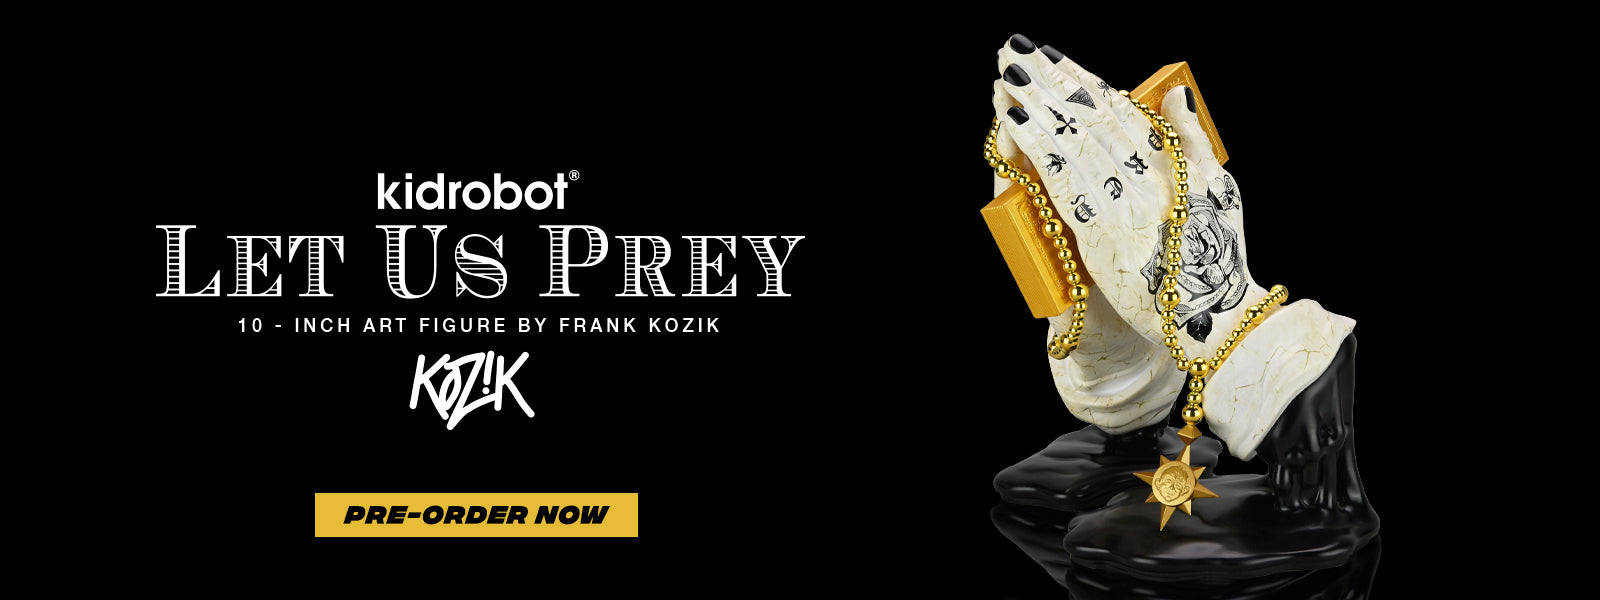 Kidrobot Let Us Prey Tatted Marble Edition - Frank Kozik